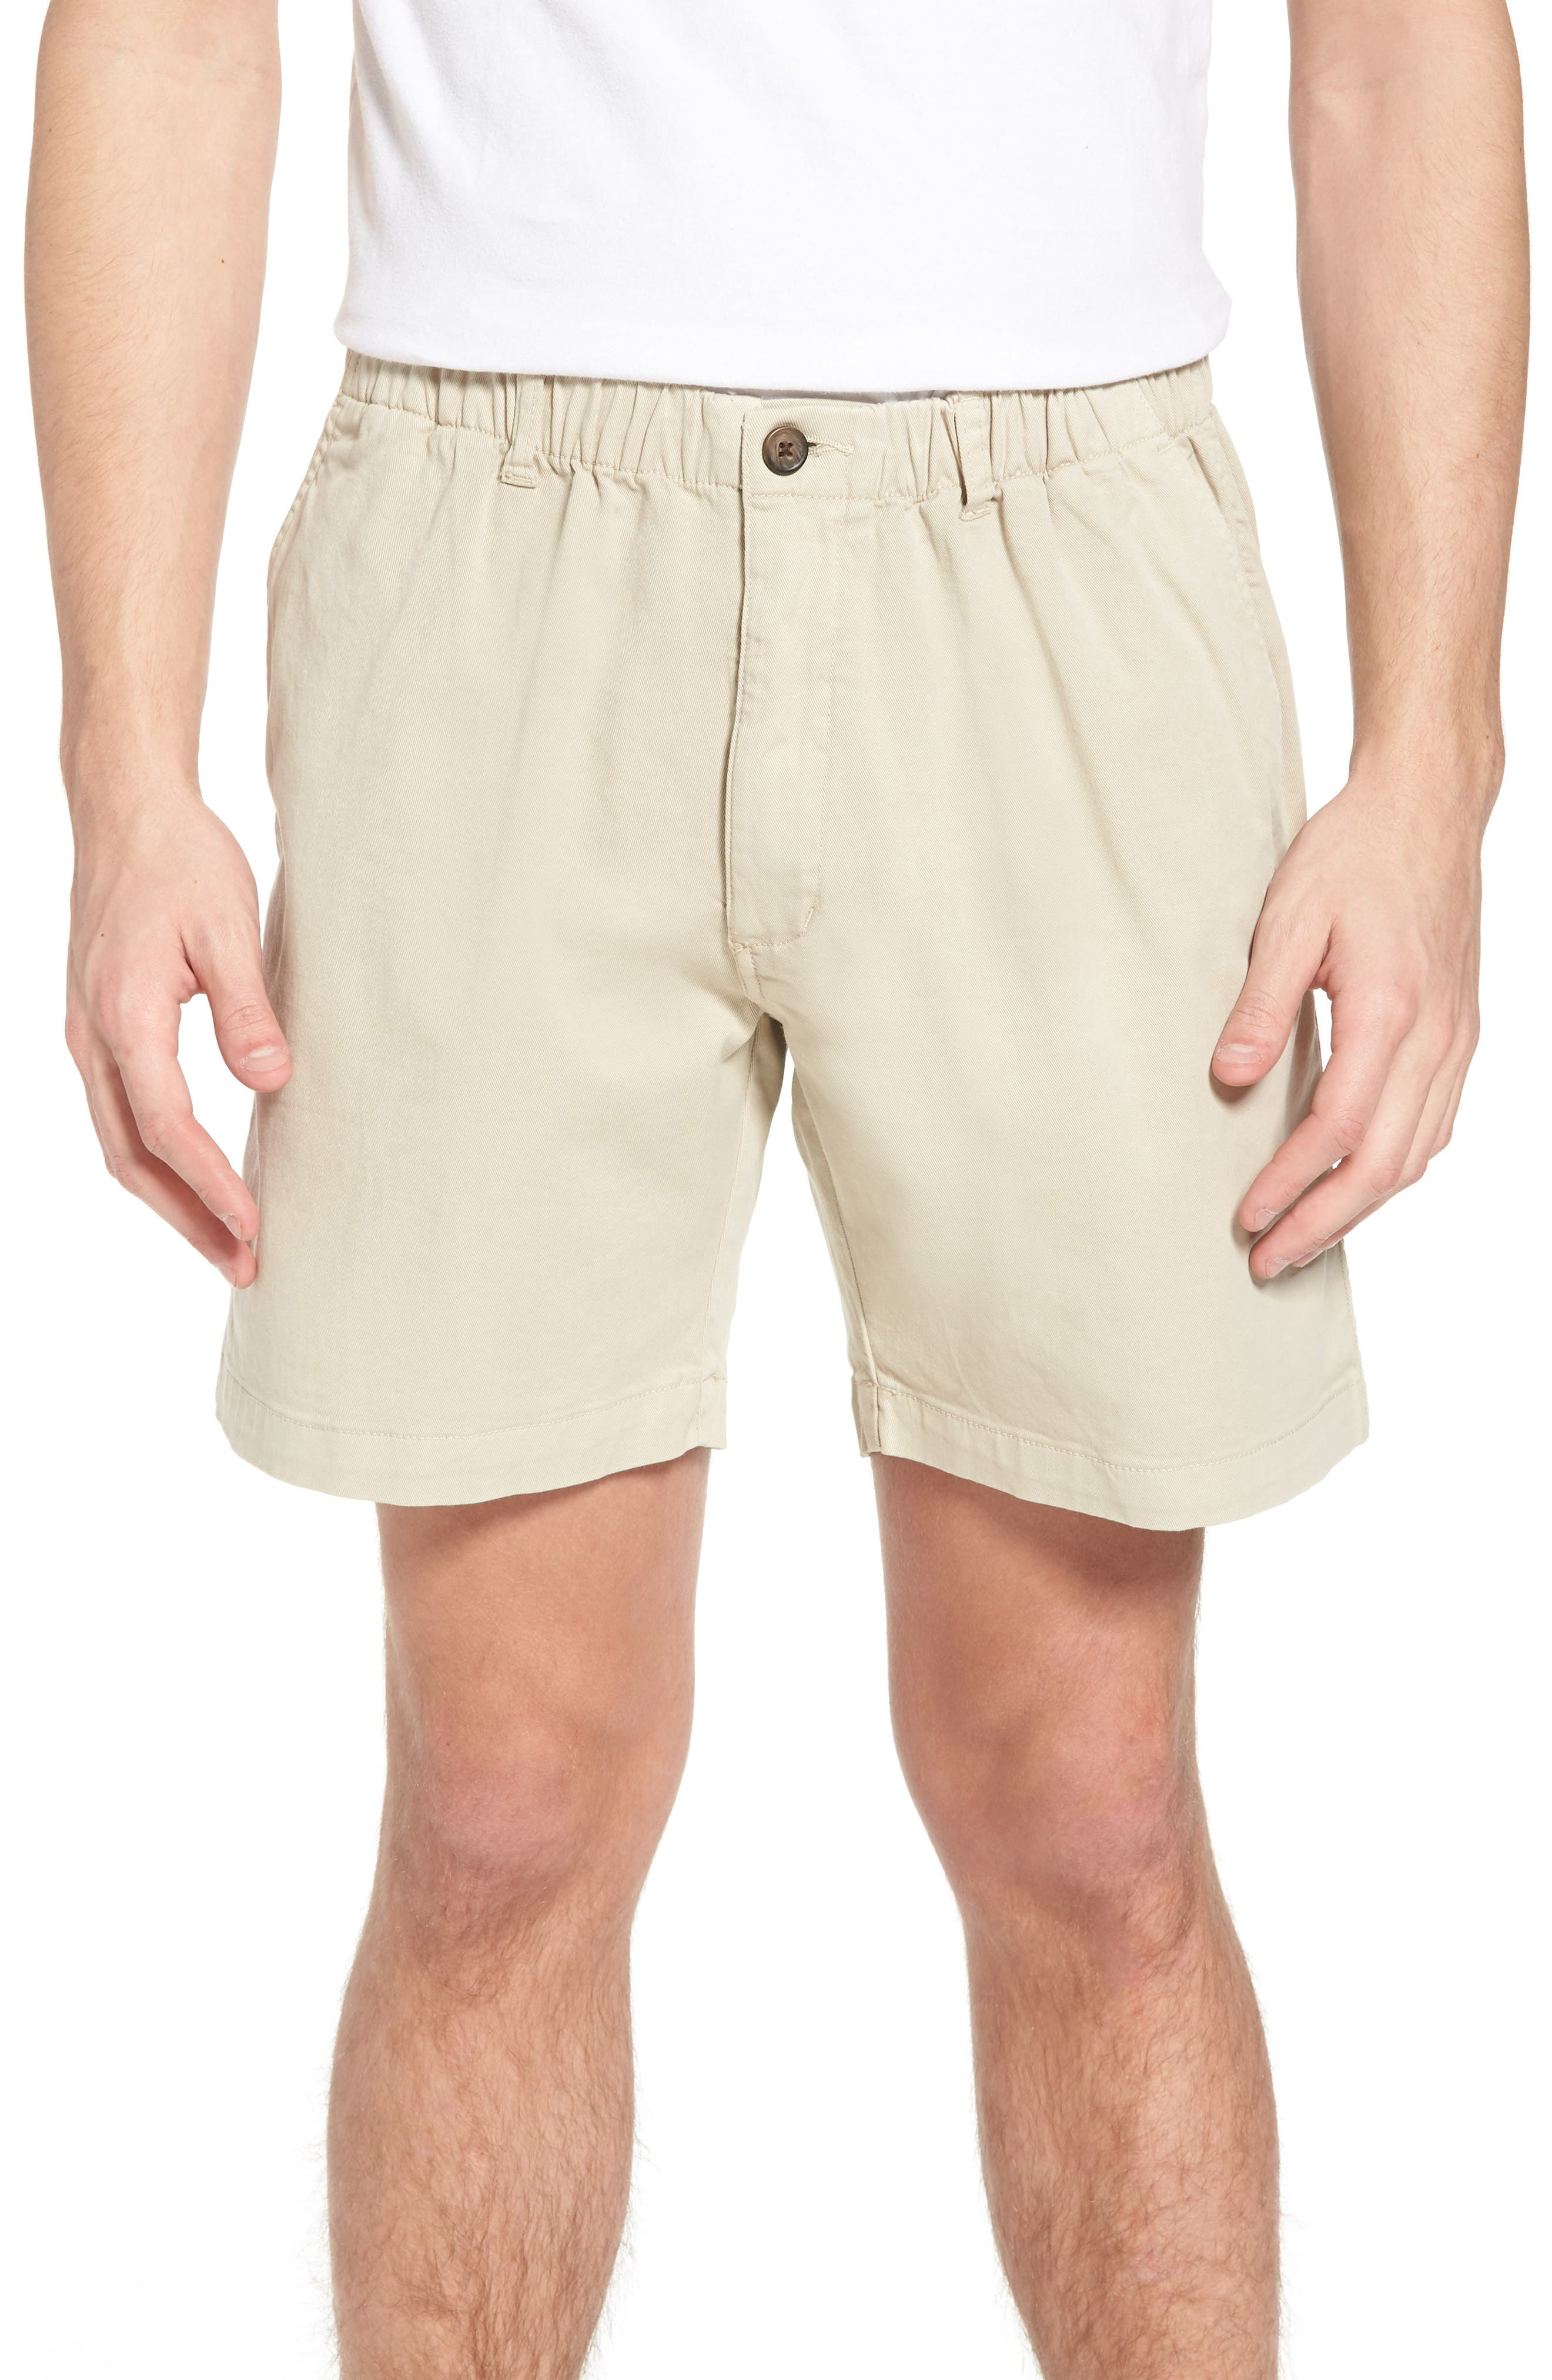 7in Snappers Elastic Waist Shorts,                         Main,                         color, STONE